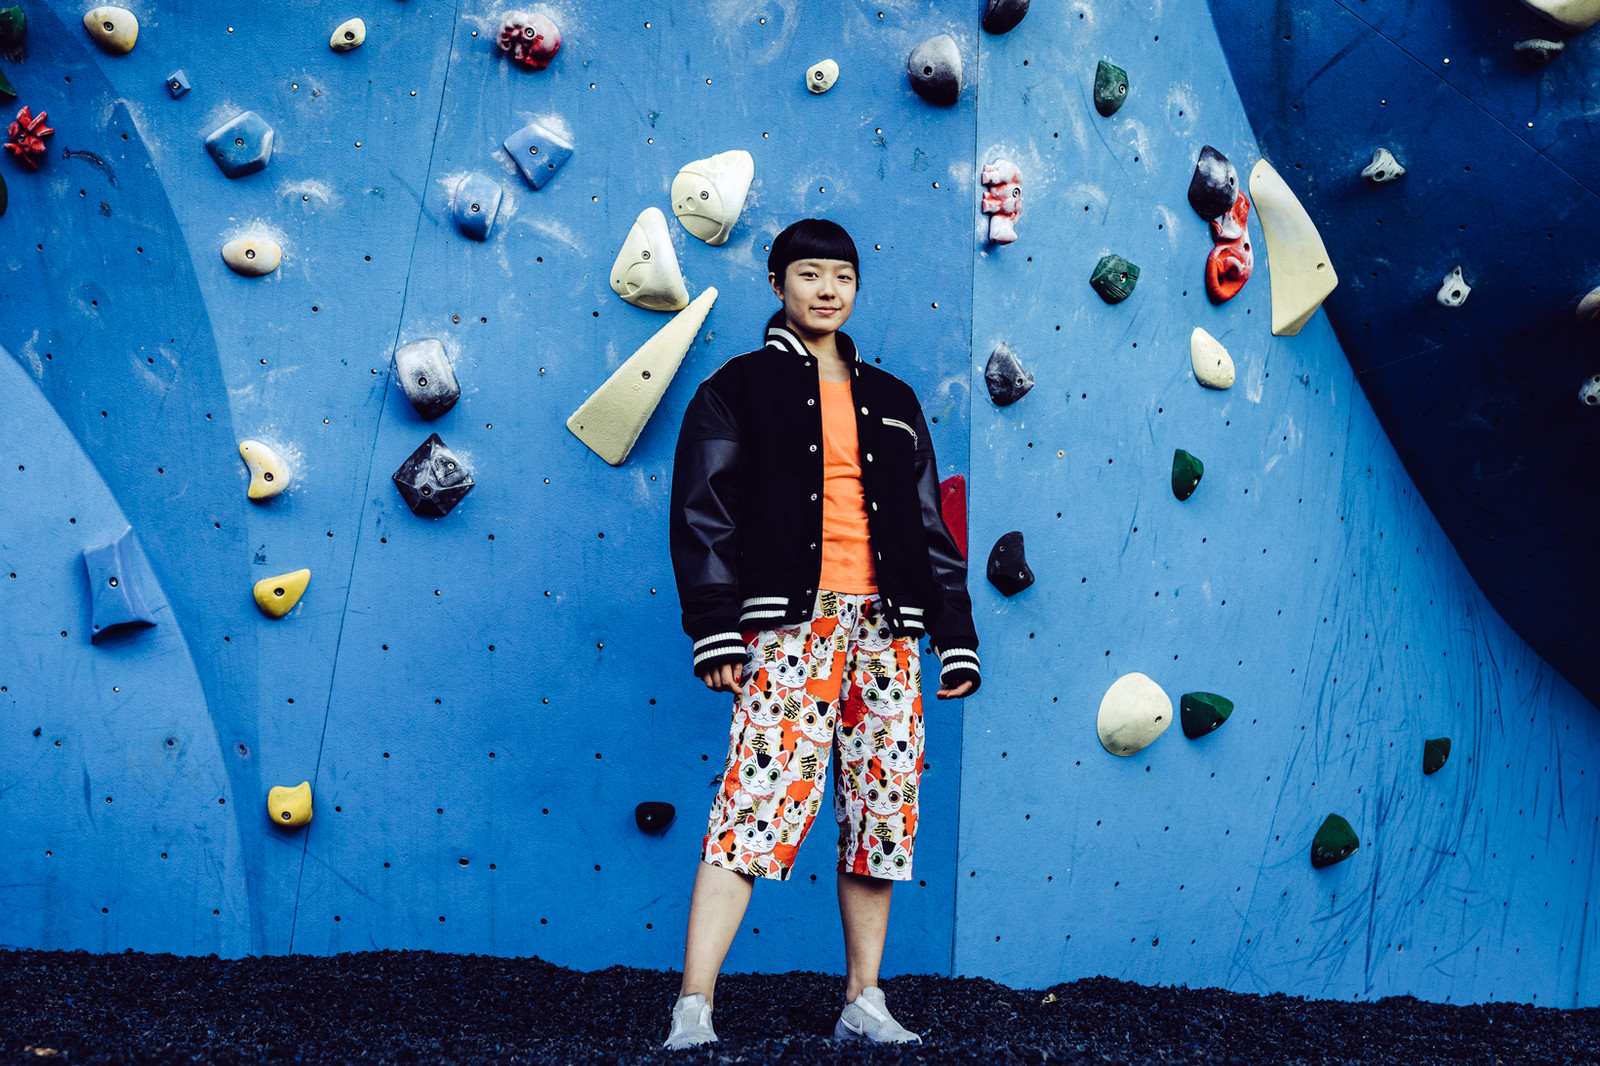 Ashima Shiraishi HIDDEN HYPEBEAST The North Face Rock Climbing Climber Chalk Comme des Garcons Louis Vuitton Shoes Sneakers Hood by Air Nike Air VaporMax Japanese Japan Bouldering